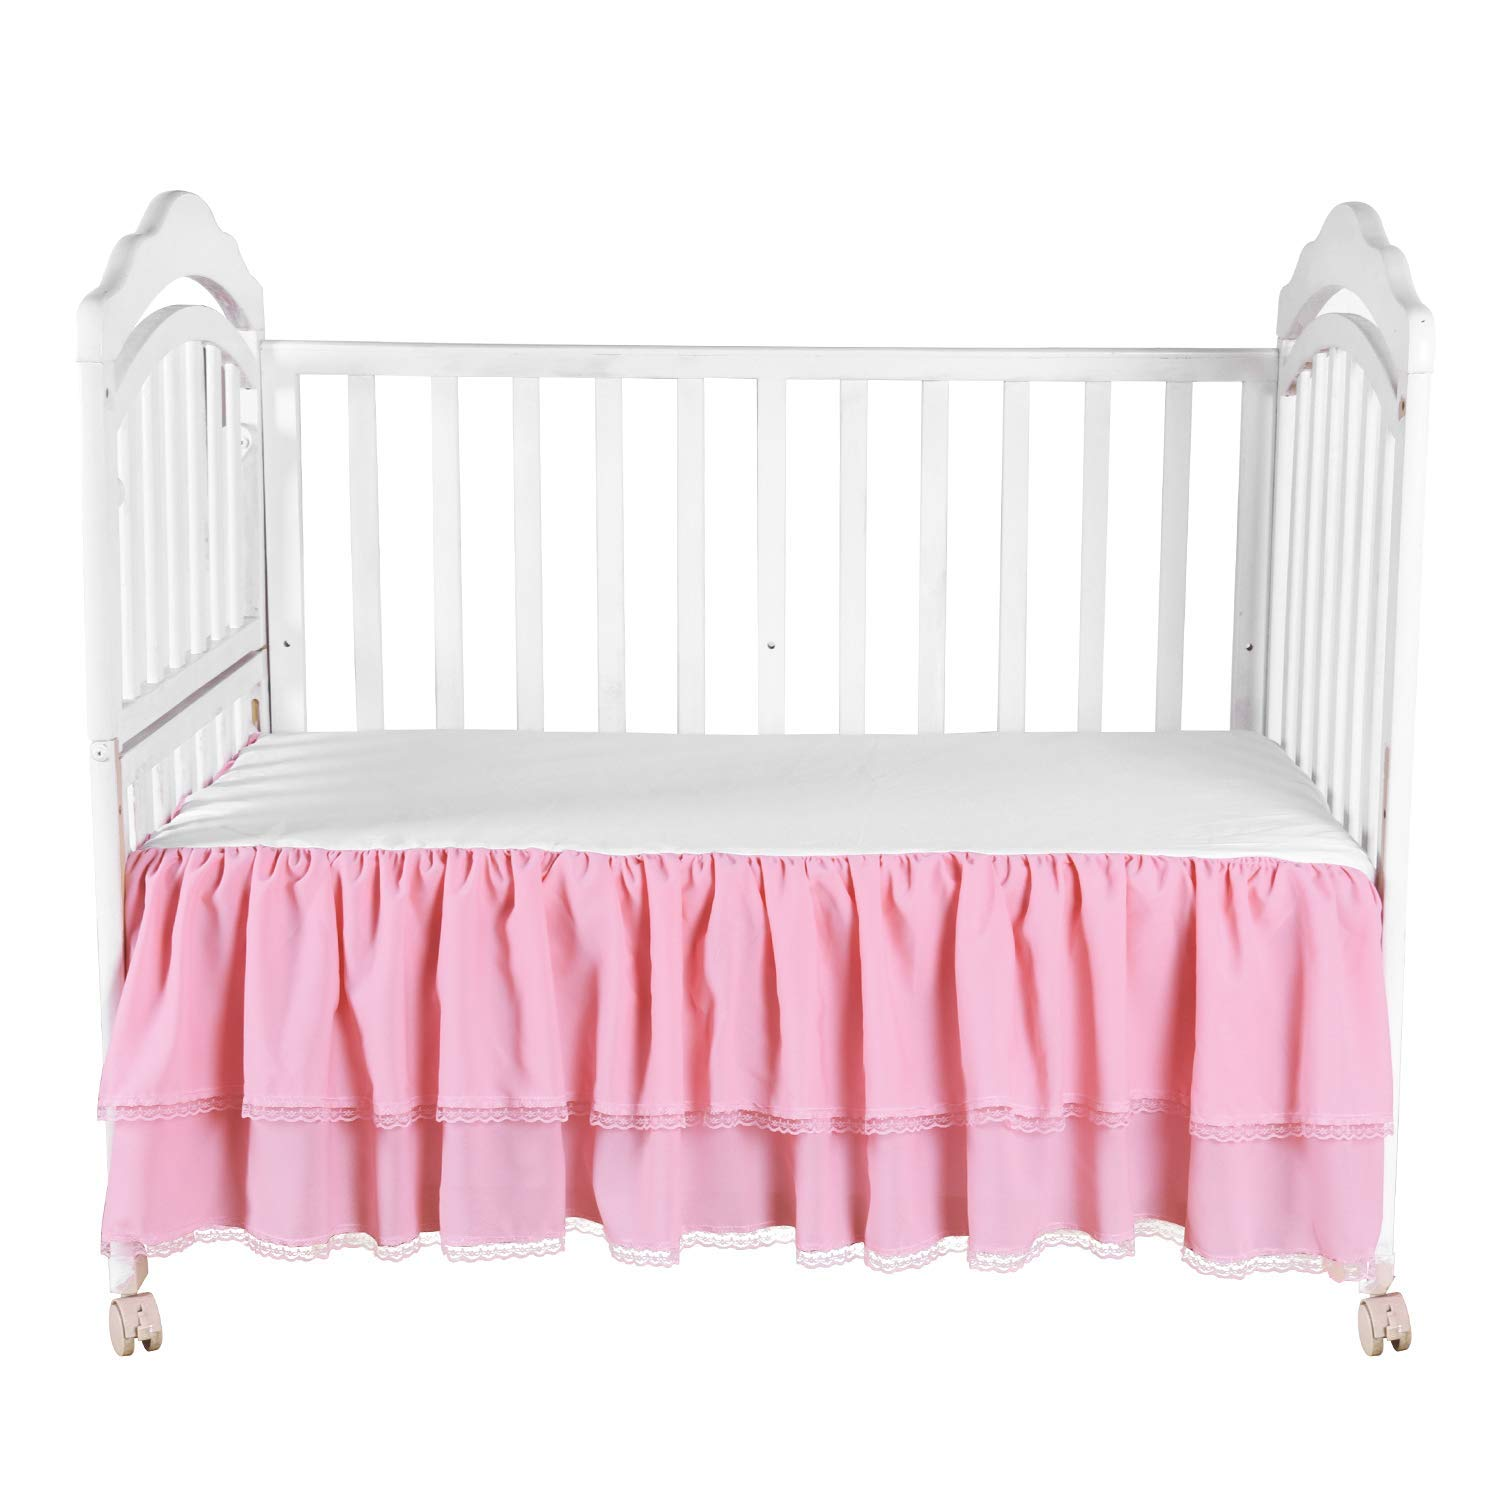 Pink Ruffle Crib Skirt with Lace Trim Nursery Crib Bed Skirt for Baby Boys and Girls 52 by 28 by 15 Inches HB HBB MAGIC CT060201A